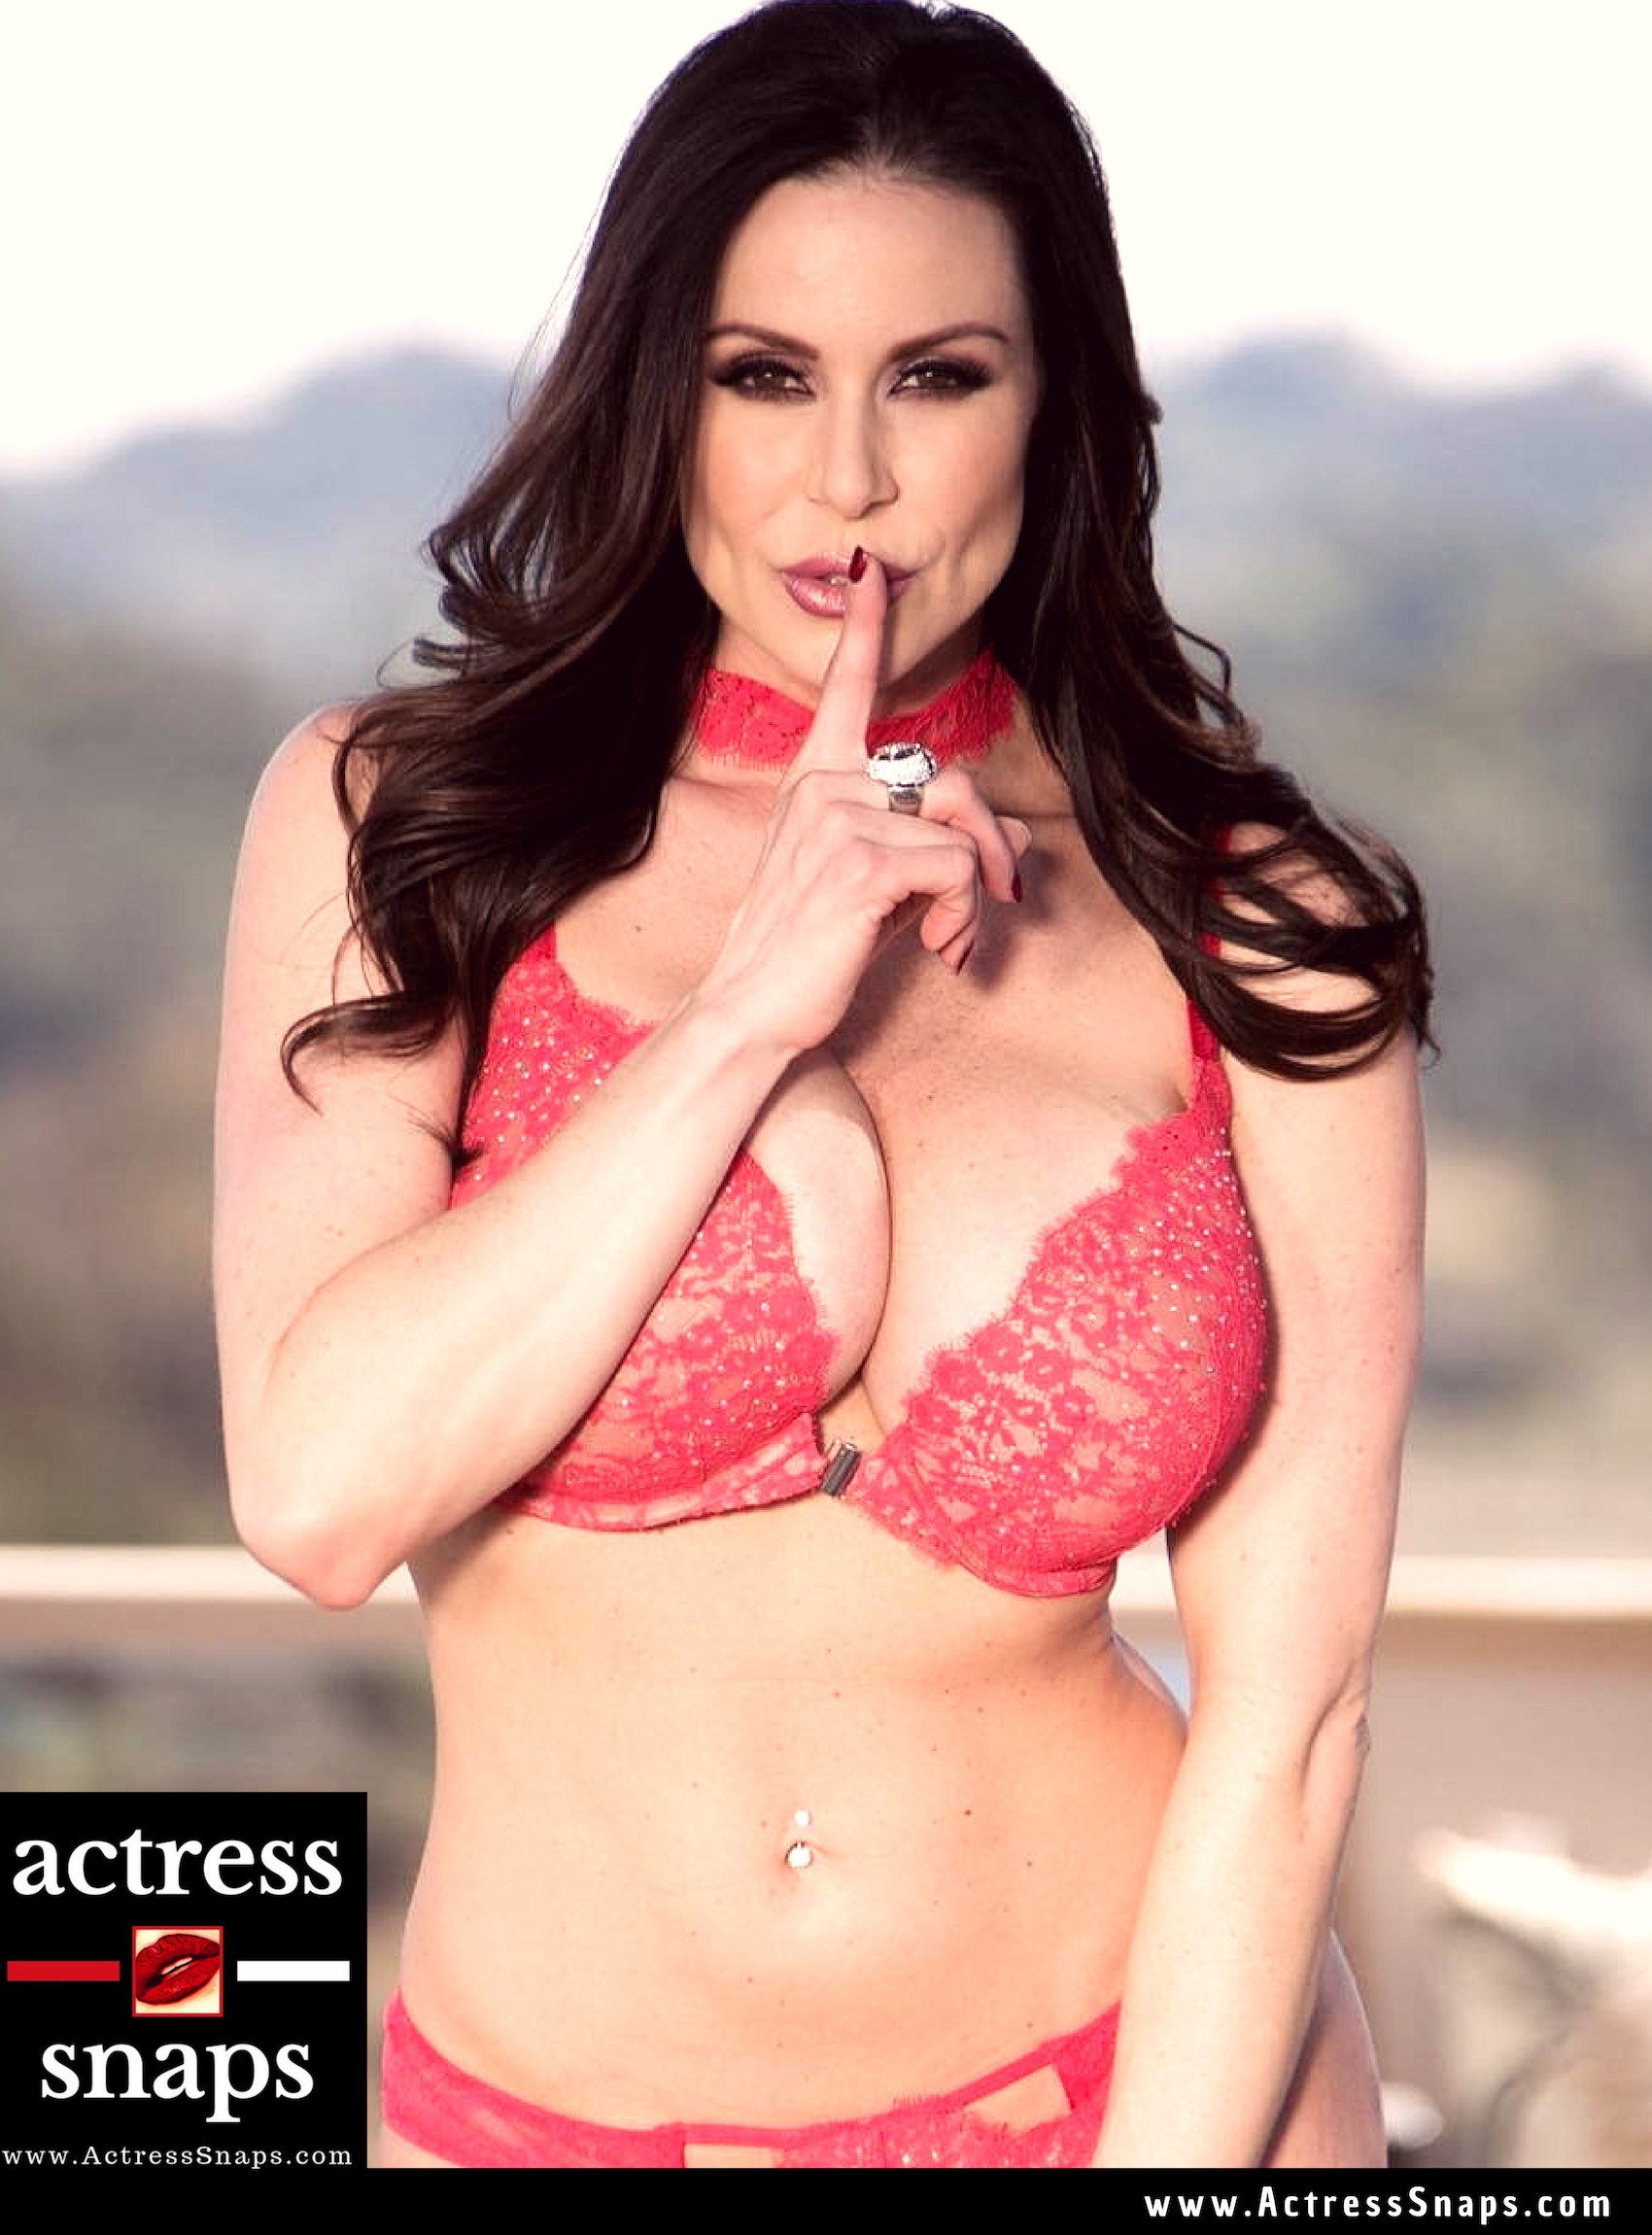 Sexy Photos of Kendra Lust - Sexy Actress Pictures | Hot Actress Pictures - ActressSnaps.com